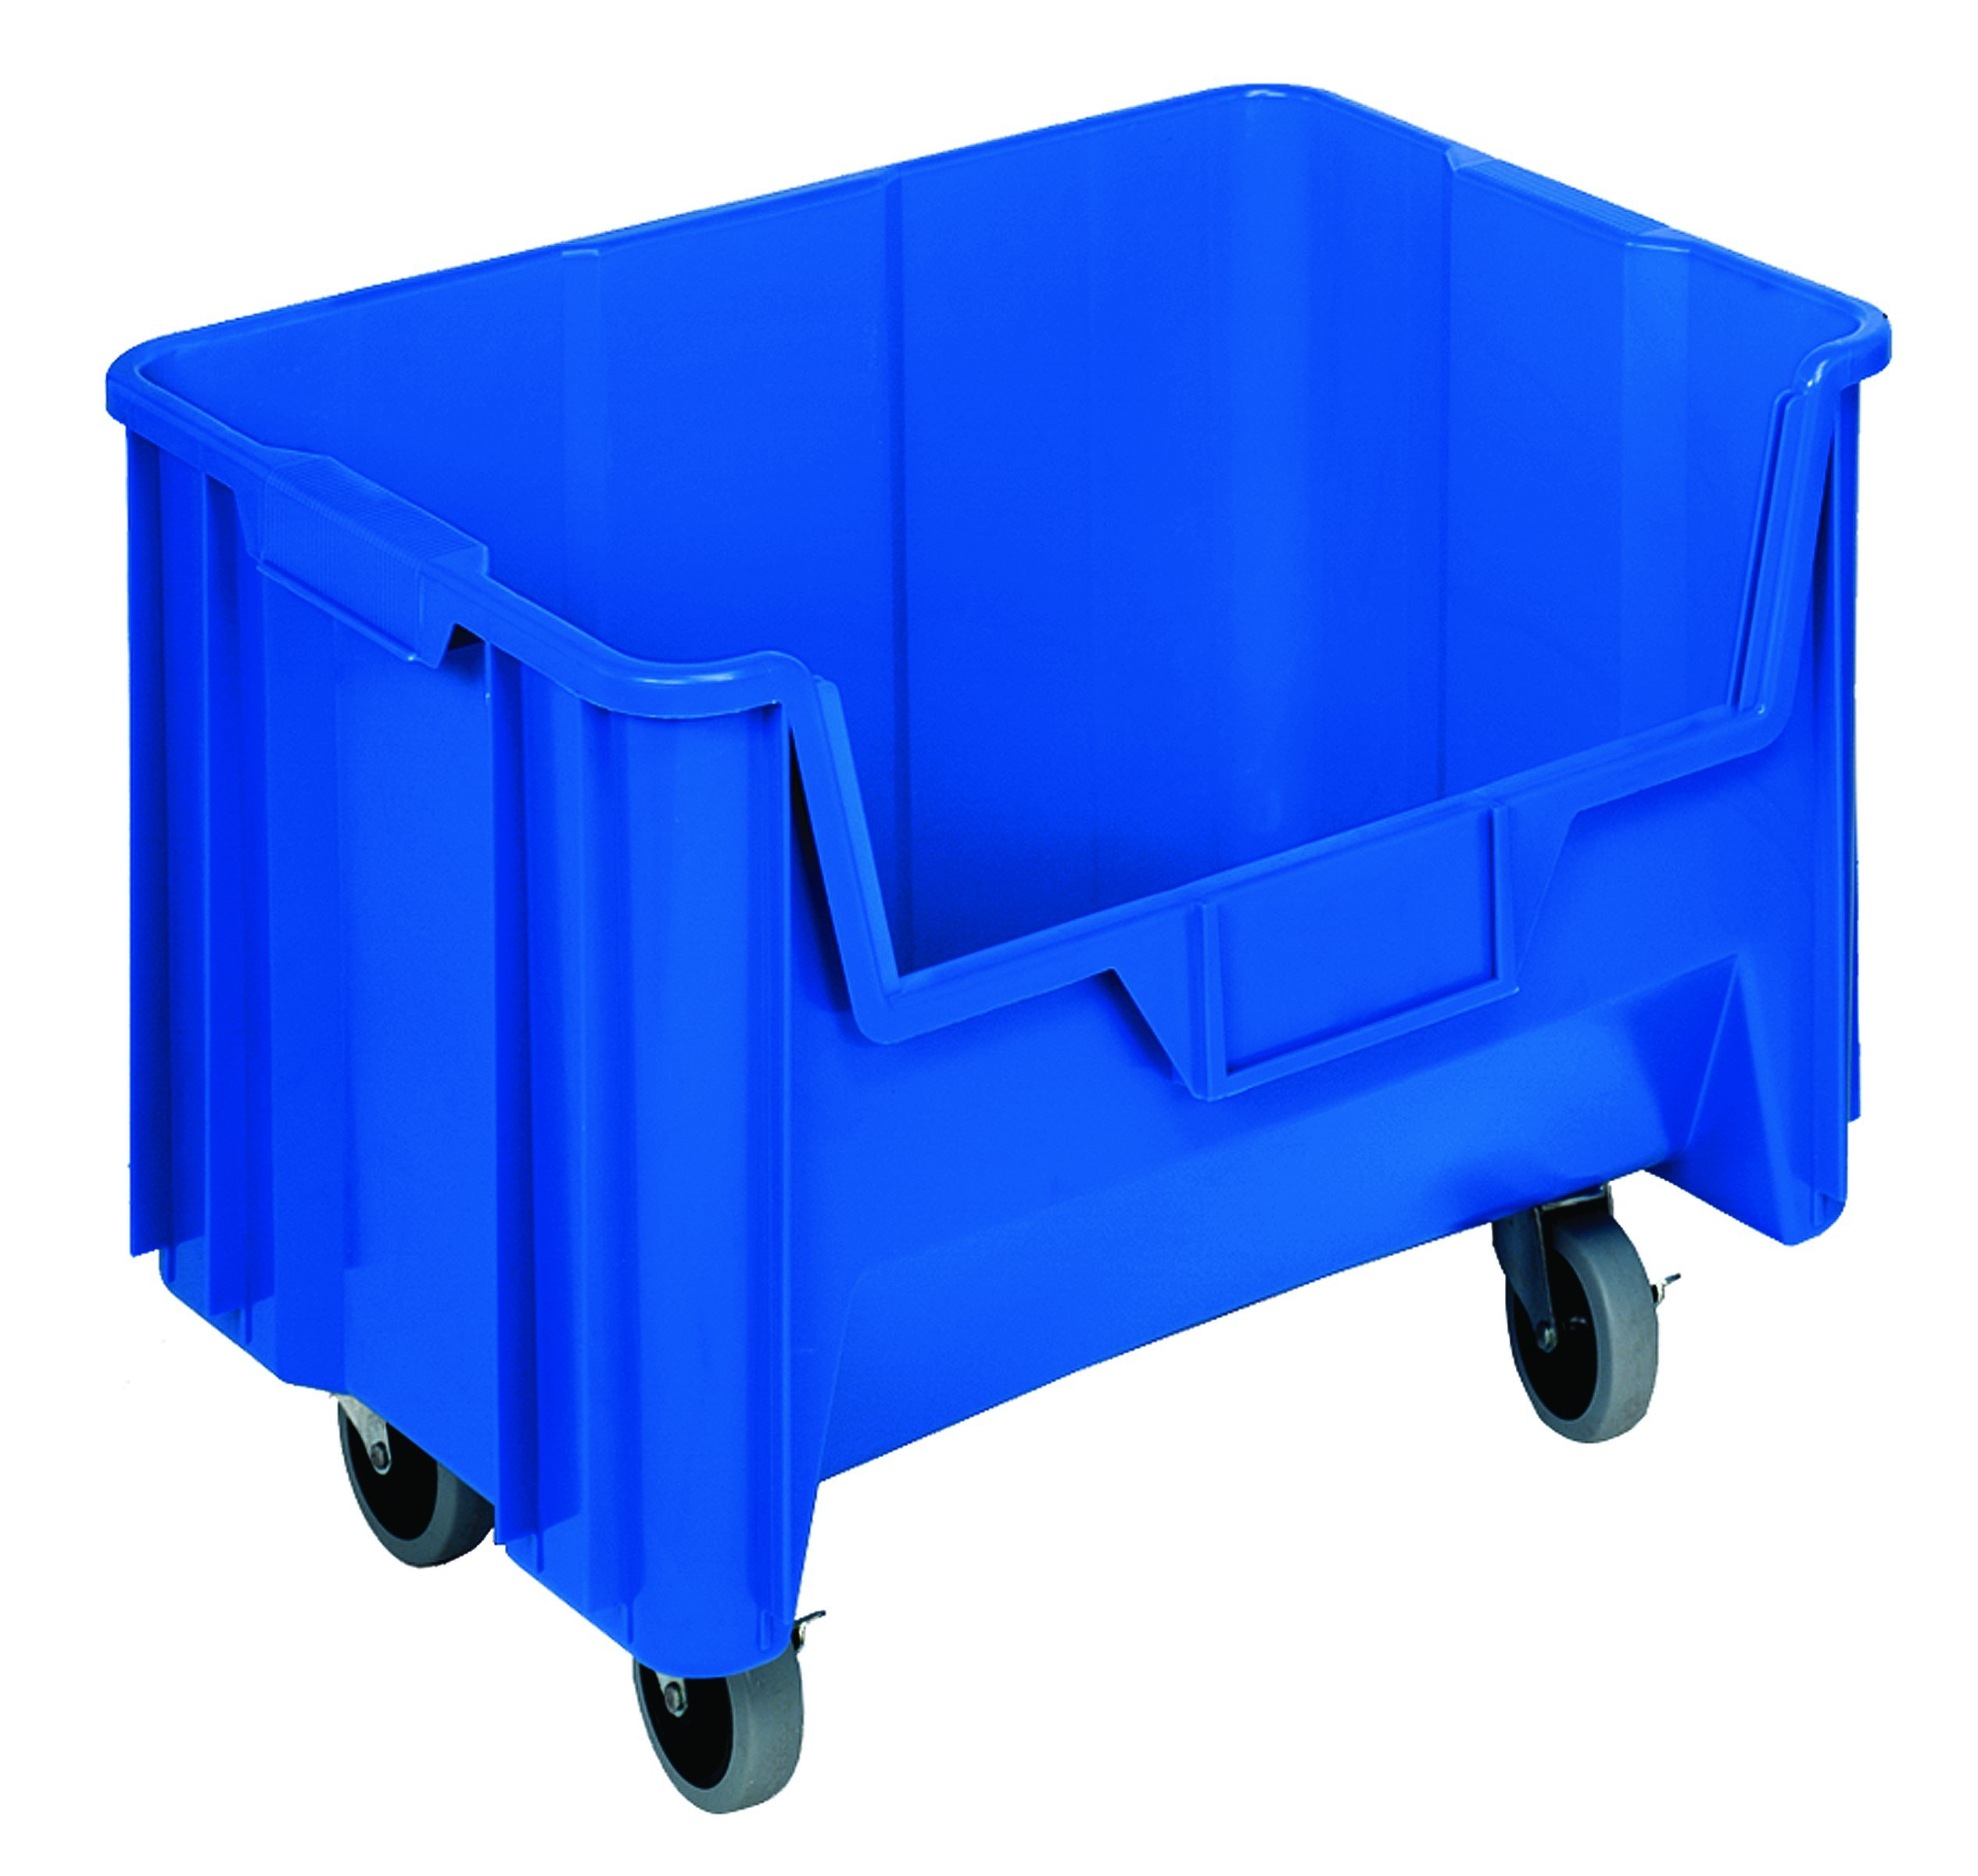 Quantum Storage Systems QGH705MOBBL Mobile Multi-Purpose Giant Stacking Open Hopper Container with Swivel Casters, 15-1/4'' x 19-7/8'' x 12-7/16'', Blue (Pack of 3)